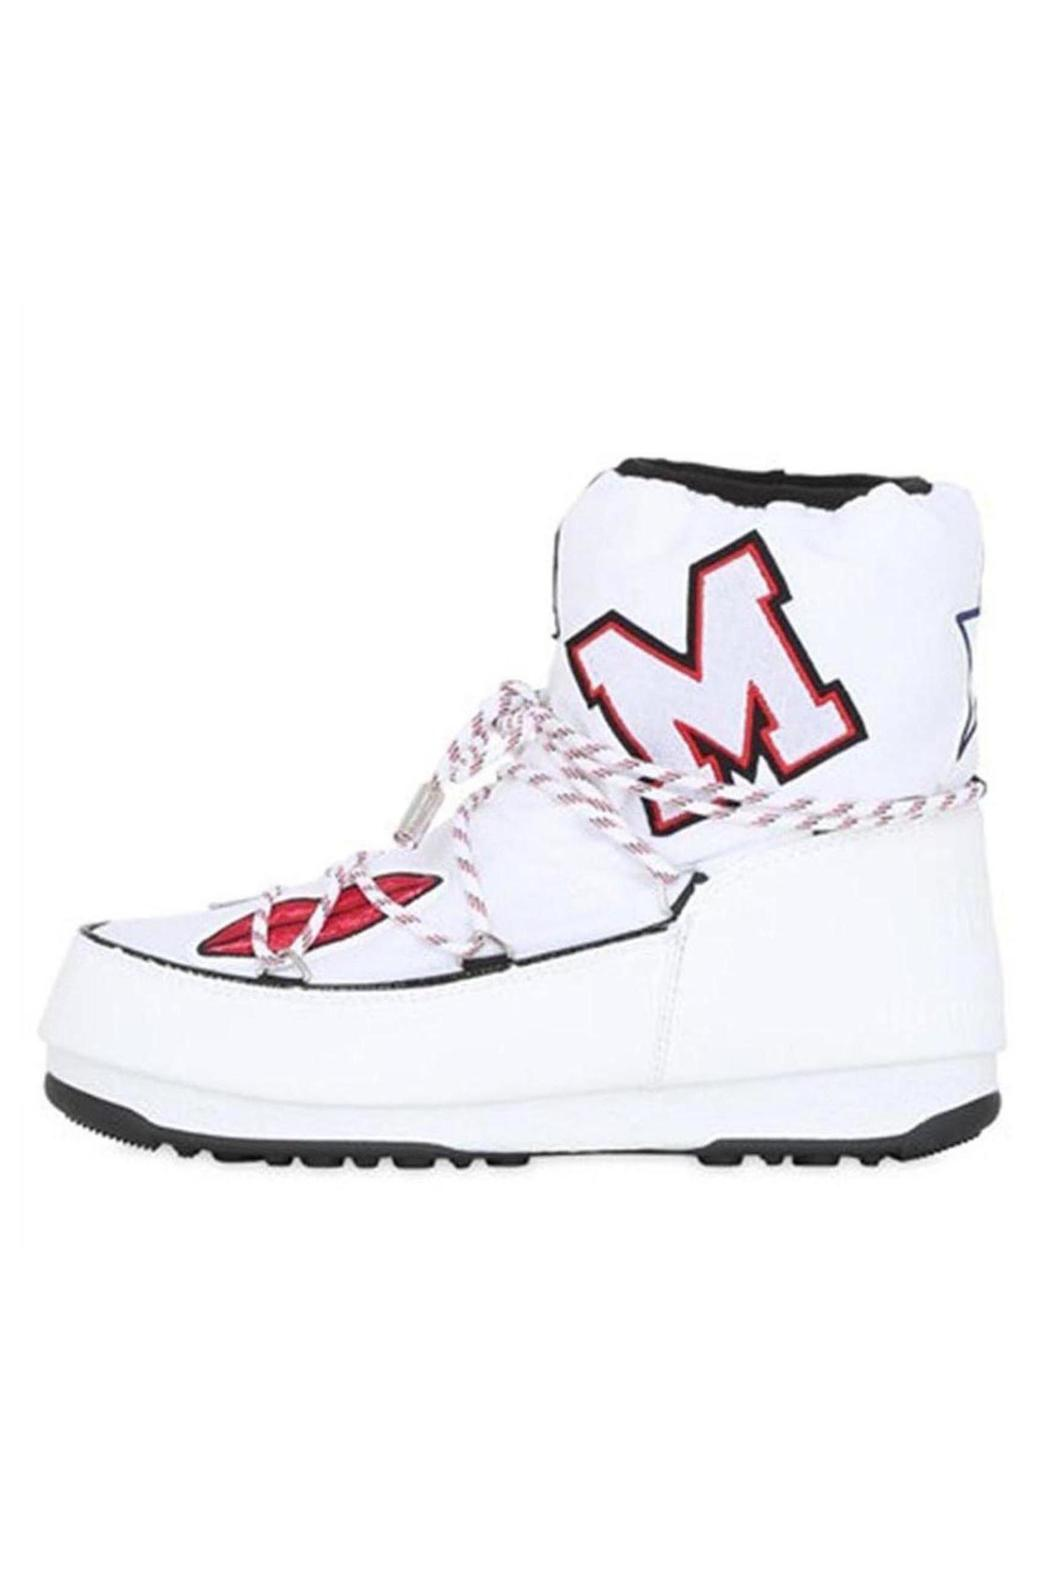 Msgm White Moon Boots From Tel Aviv By Sugar Mama